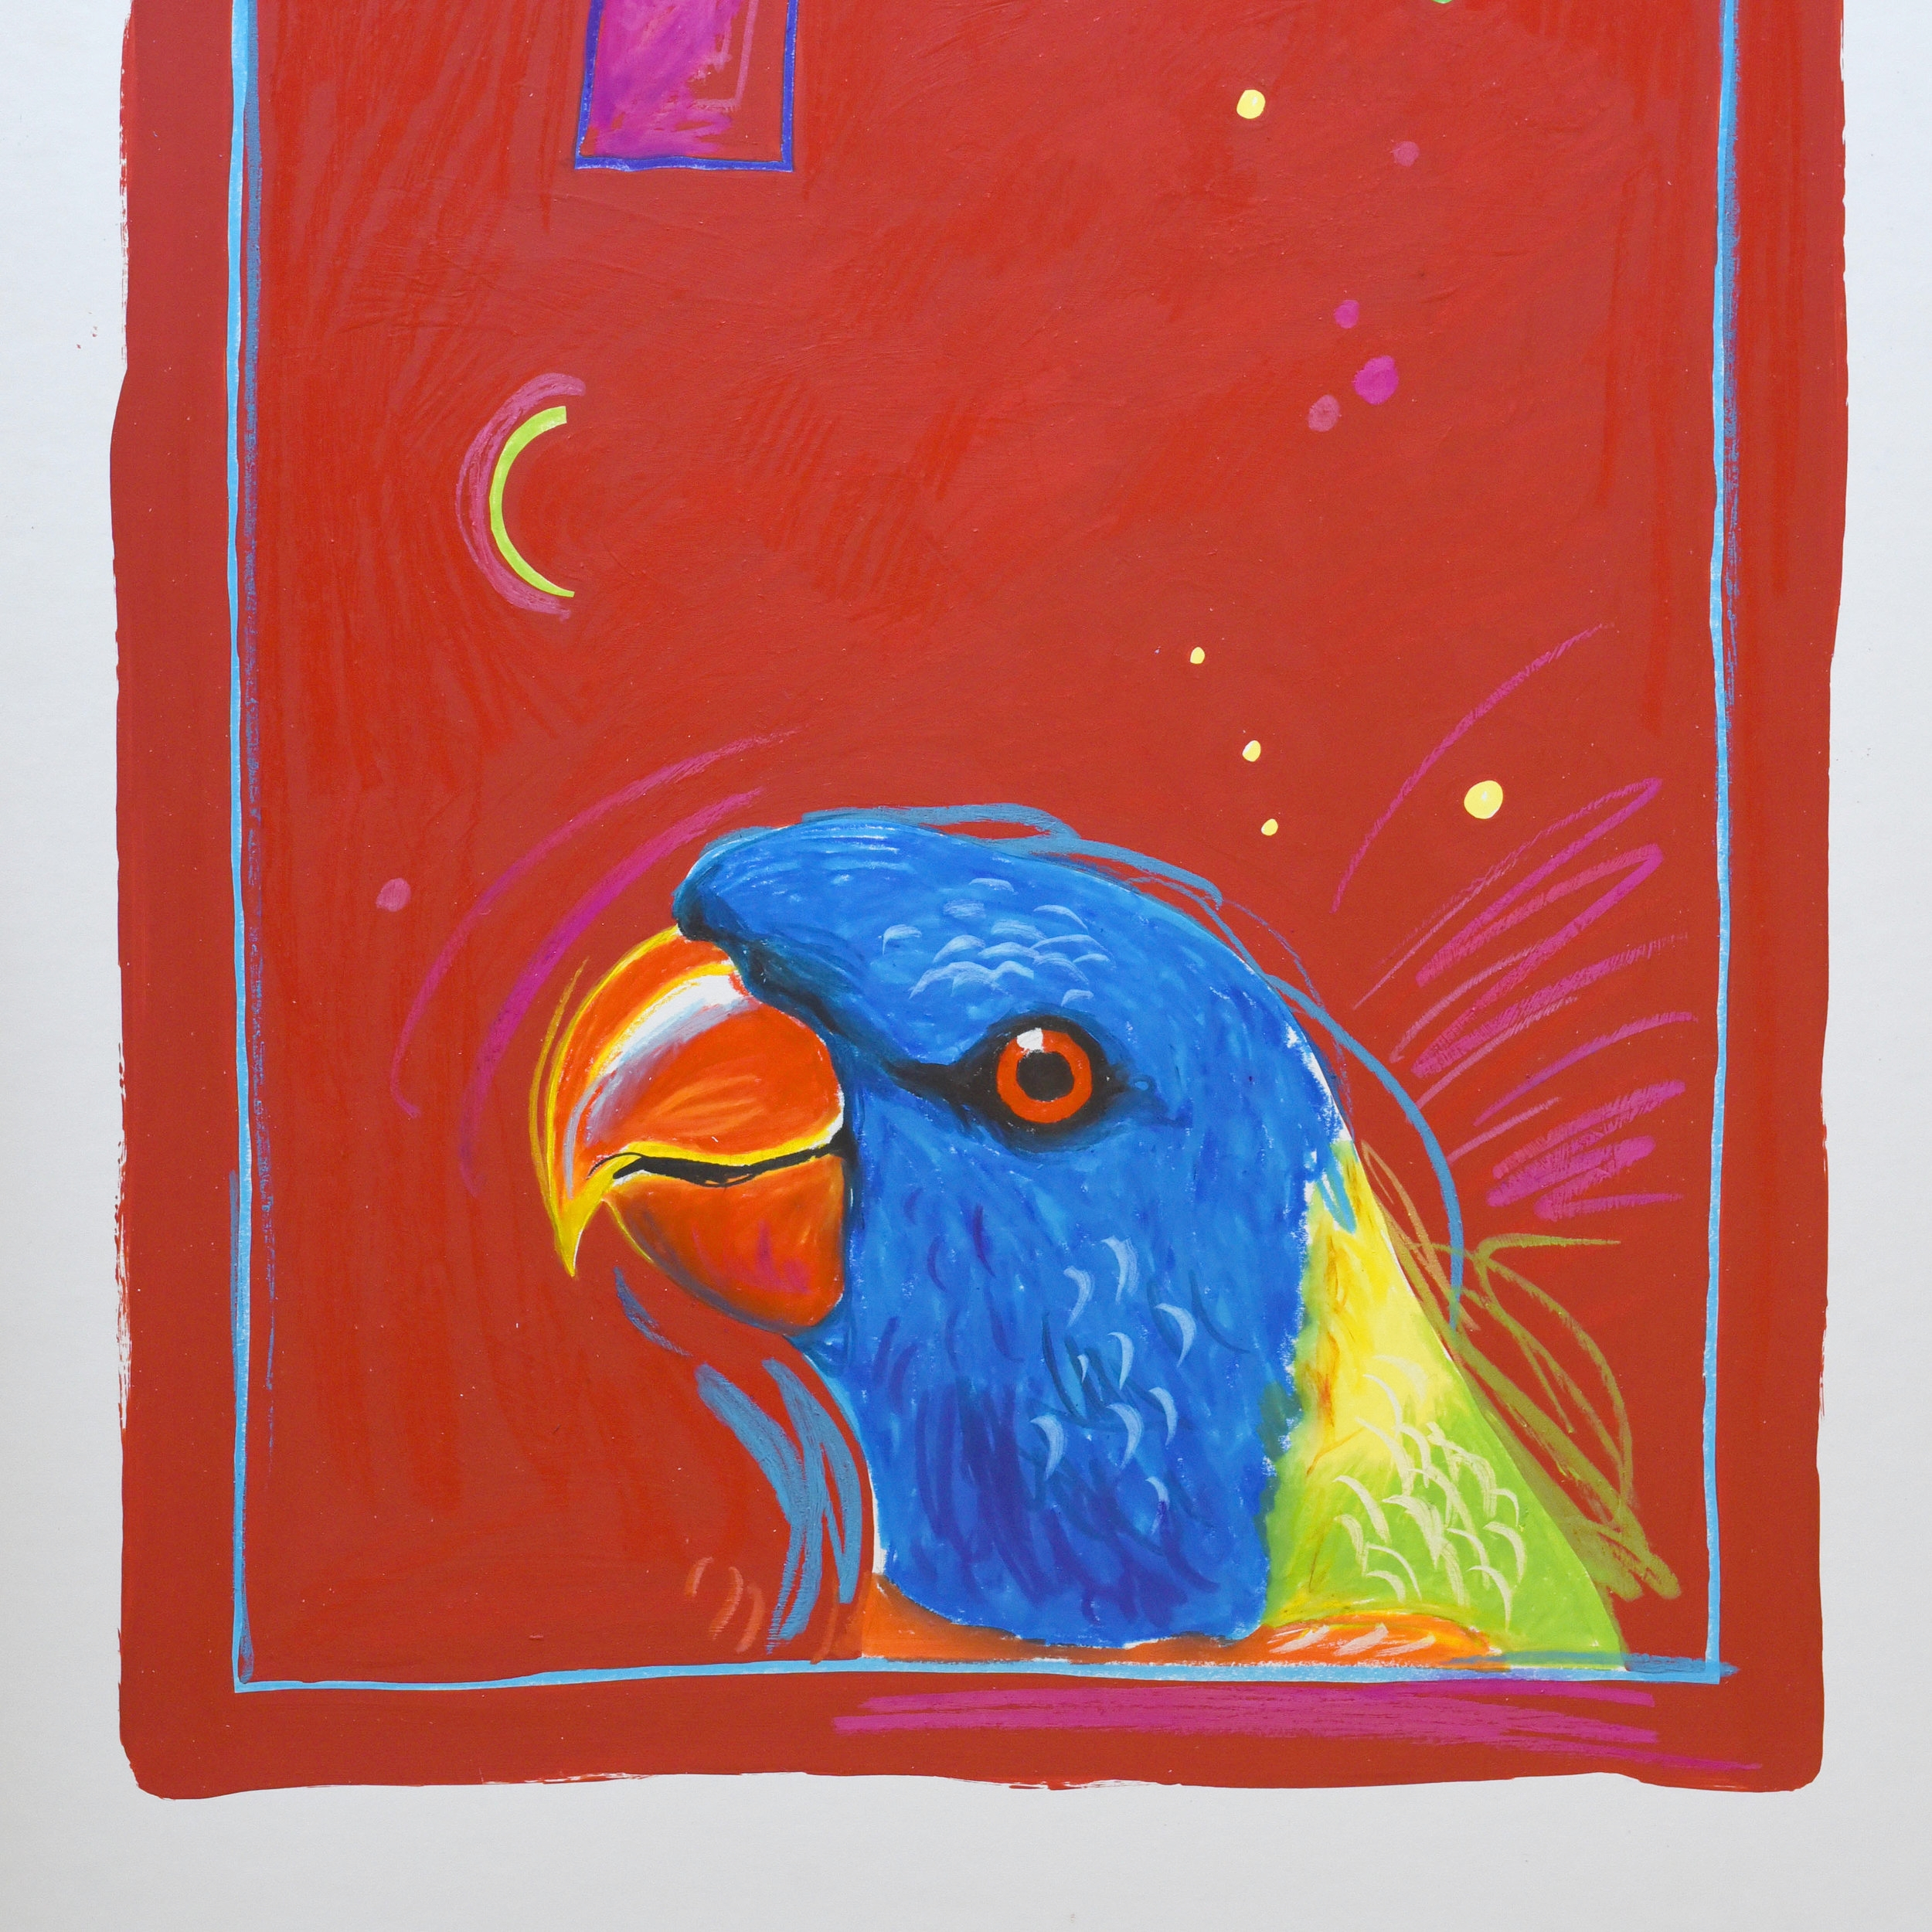 Painting of a Rainbow lorikeet head using wax pencil and acrylic on art board